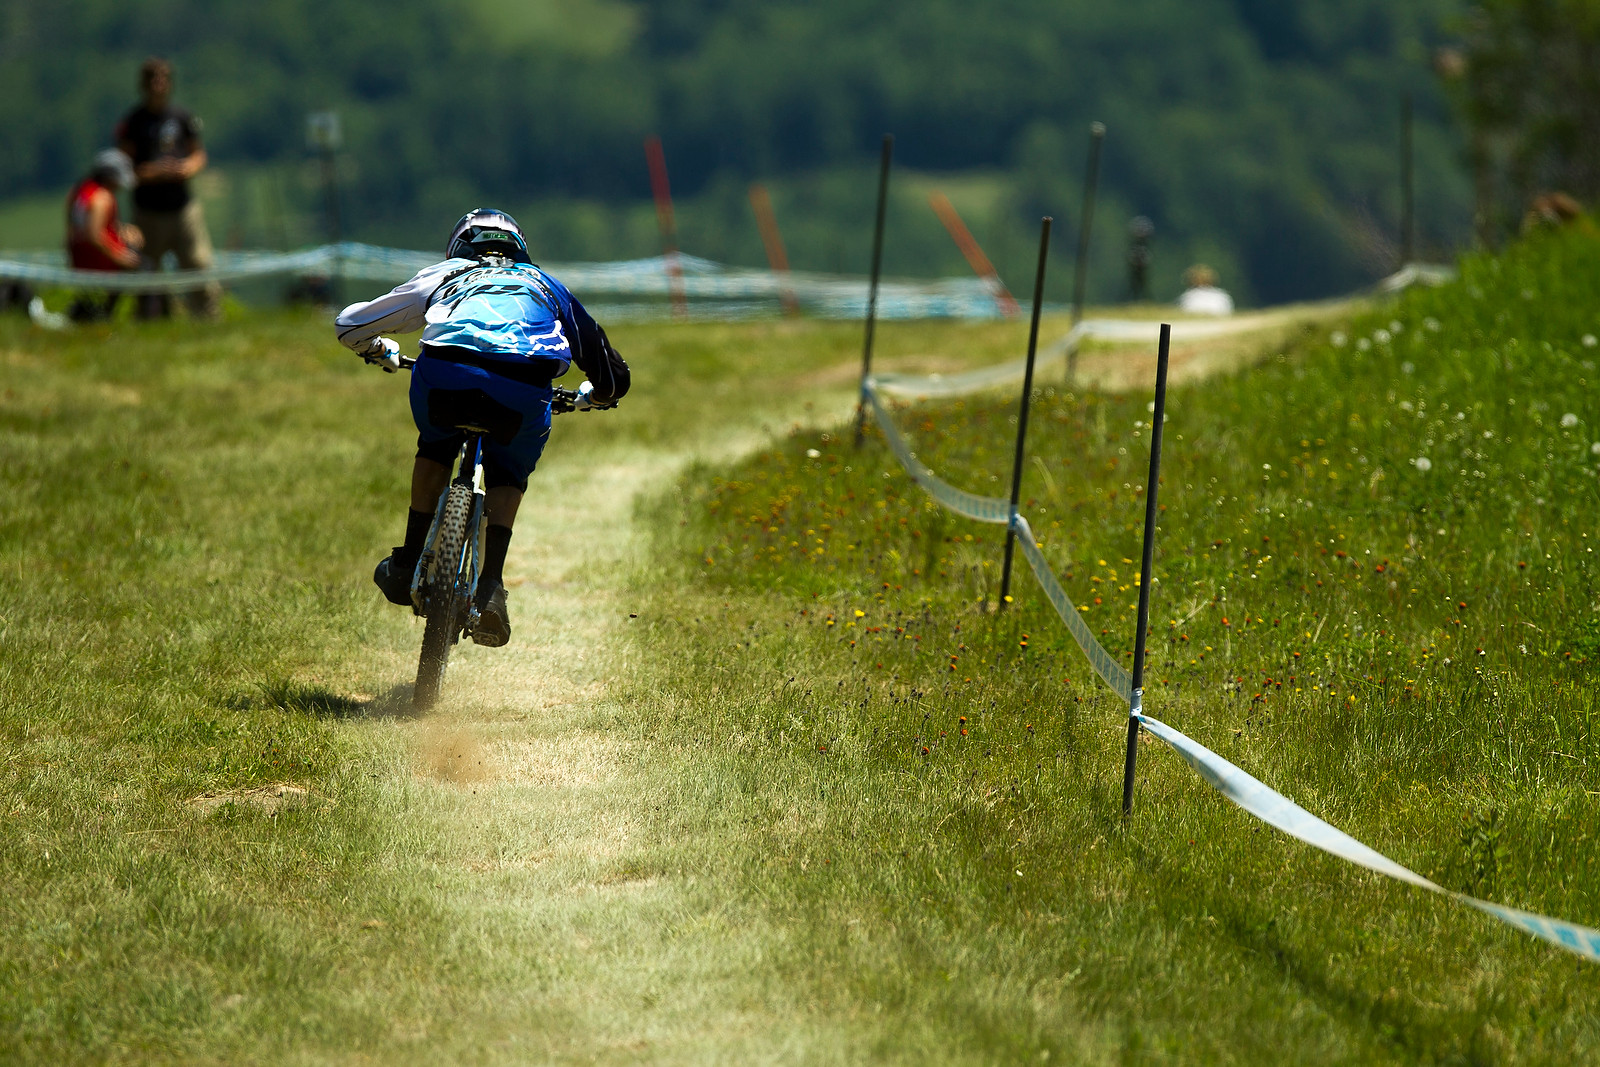 Andrew Neethling at Mont Sainte Anne - 2012 UCI World Cup, Mont Sainte Anne, Day 2 - Mountain Biking Pictures - Vital MTB